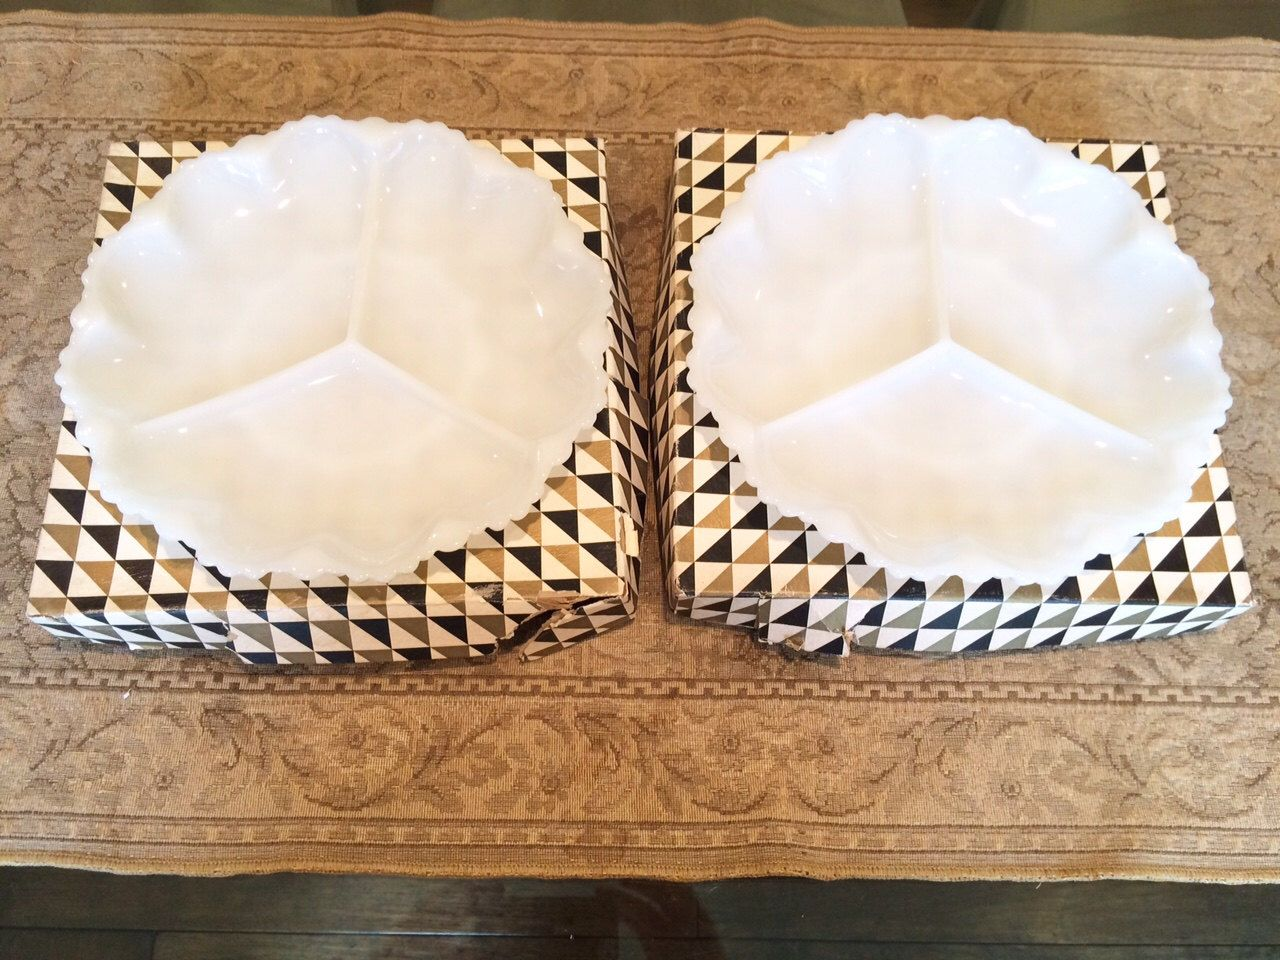 2 Milk Glass Anchor Hocking White Divided Dishes with Original Boxes by TwoBeContinued on Etsy https://www.etsy.com/listing/238525088/2-milk-glass-anchor-hocking-white